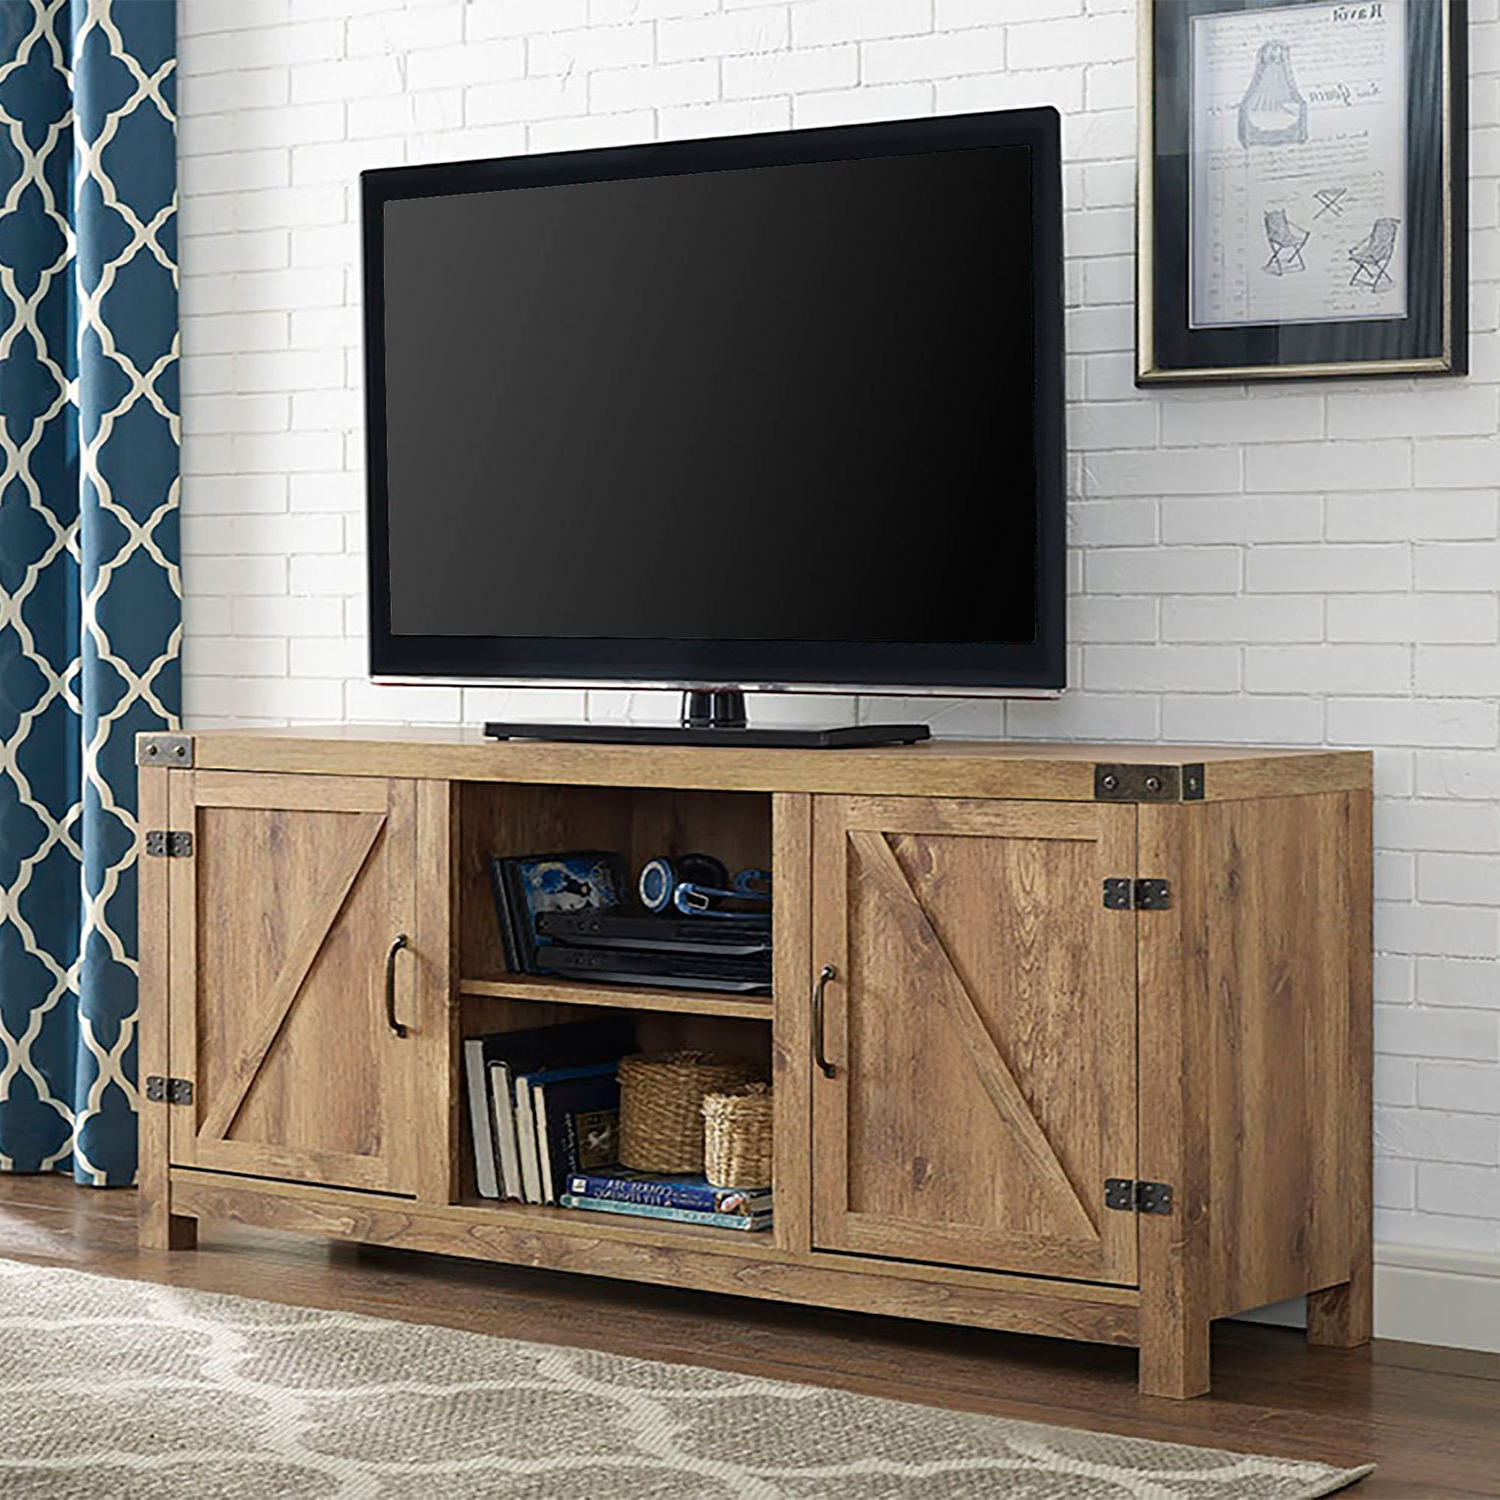 Tv Console | Canyon Creek 84 Inch Entertainment Console And Hutch Inside Canyon 74 Inch Tv Stands (View 17 of 20)